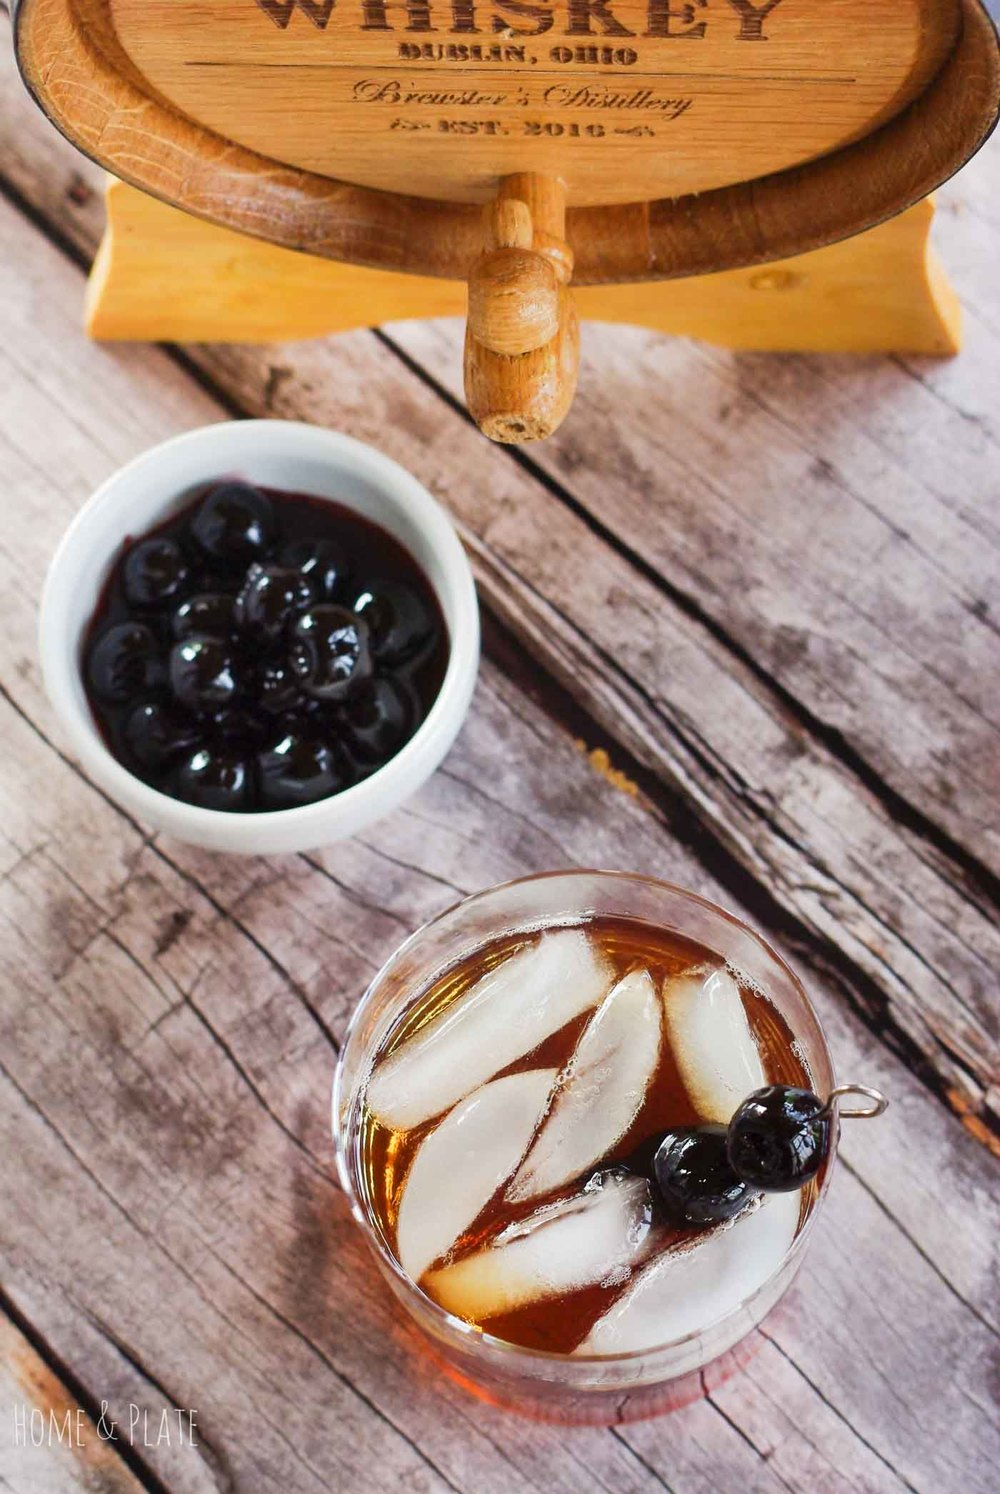 Barrel Manhattan Recipe